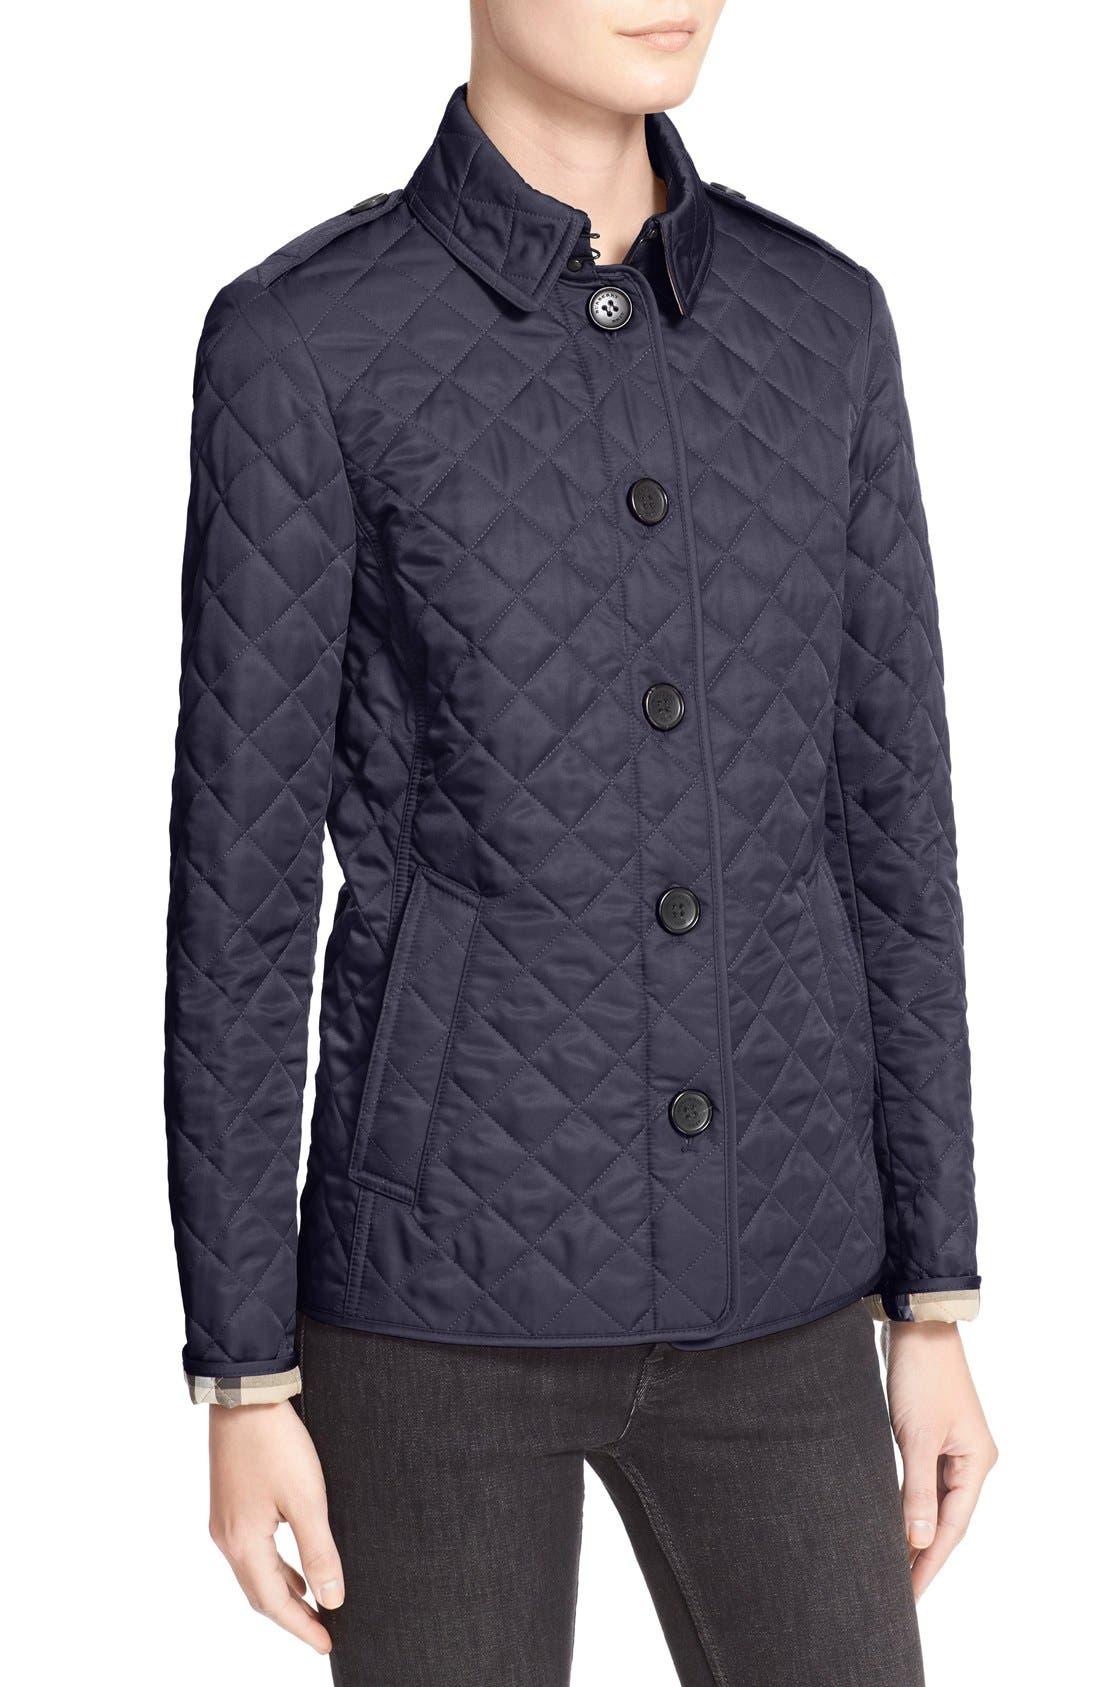 Ashurst Quilted Jacket,                             Alternate thumbnail 7, color,                             Navy